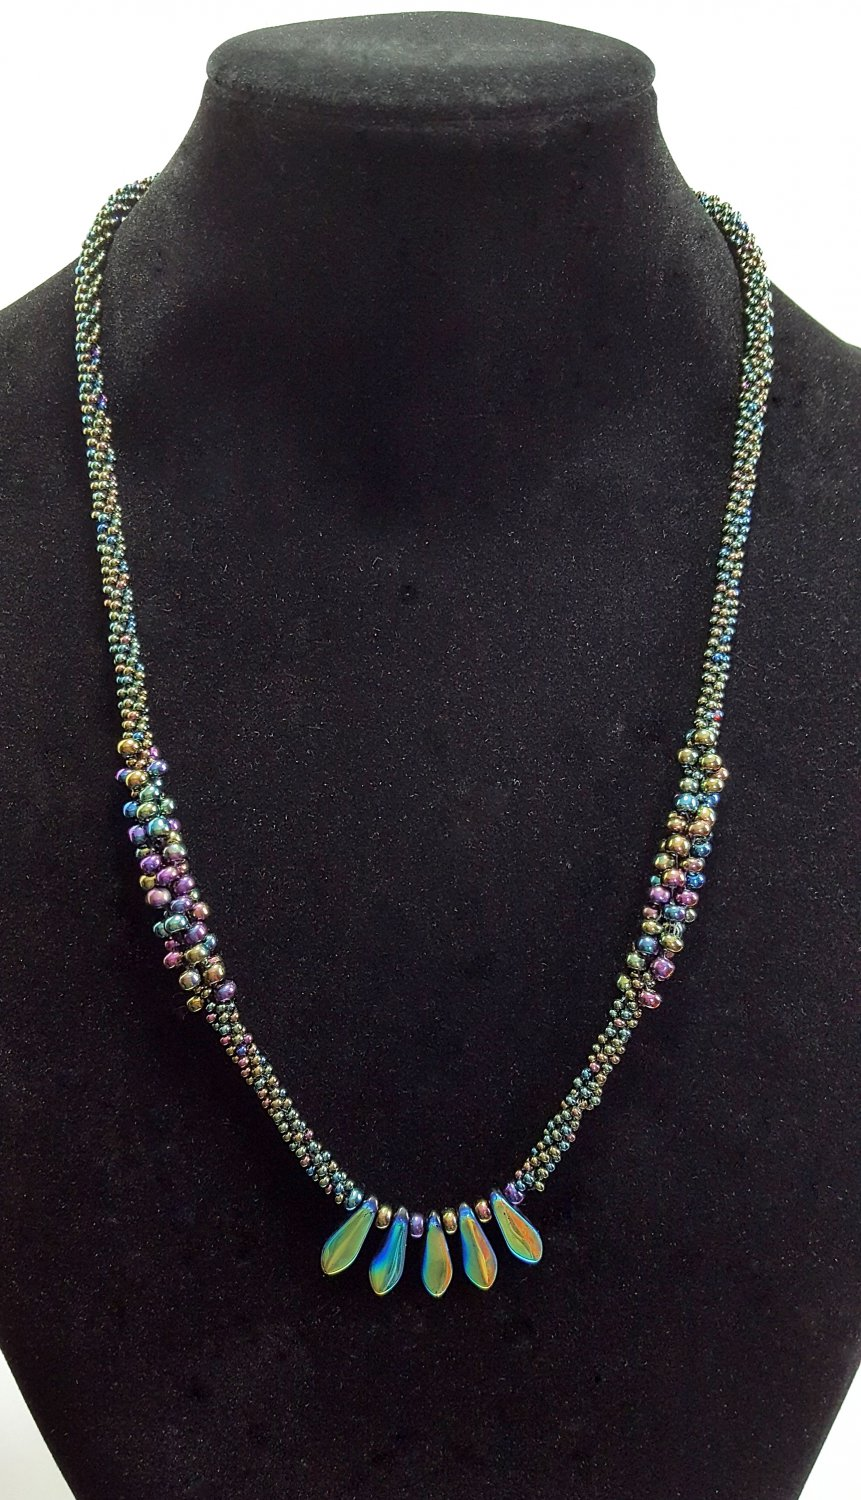 Iridescent Spiked Kumihimo Necklace